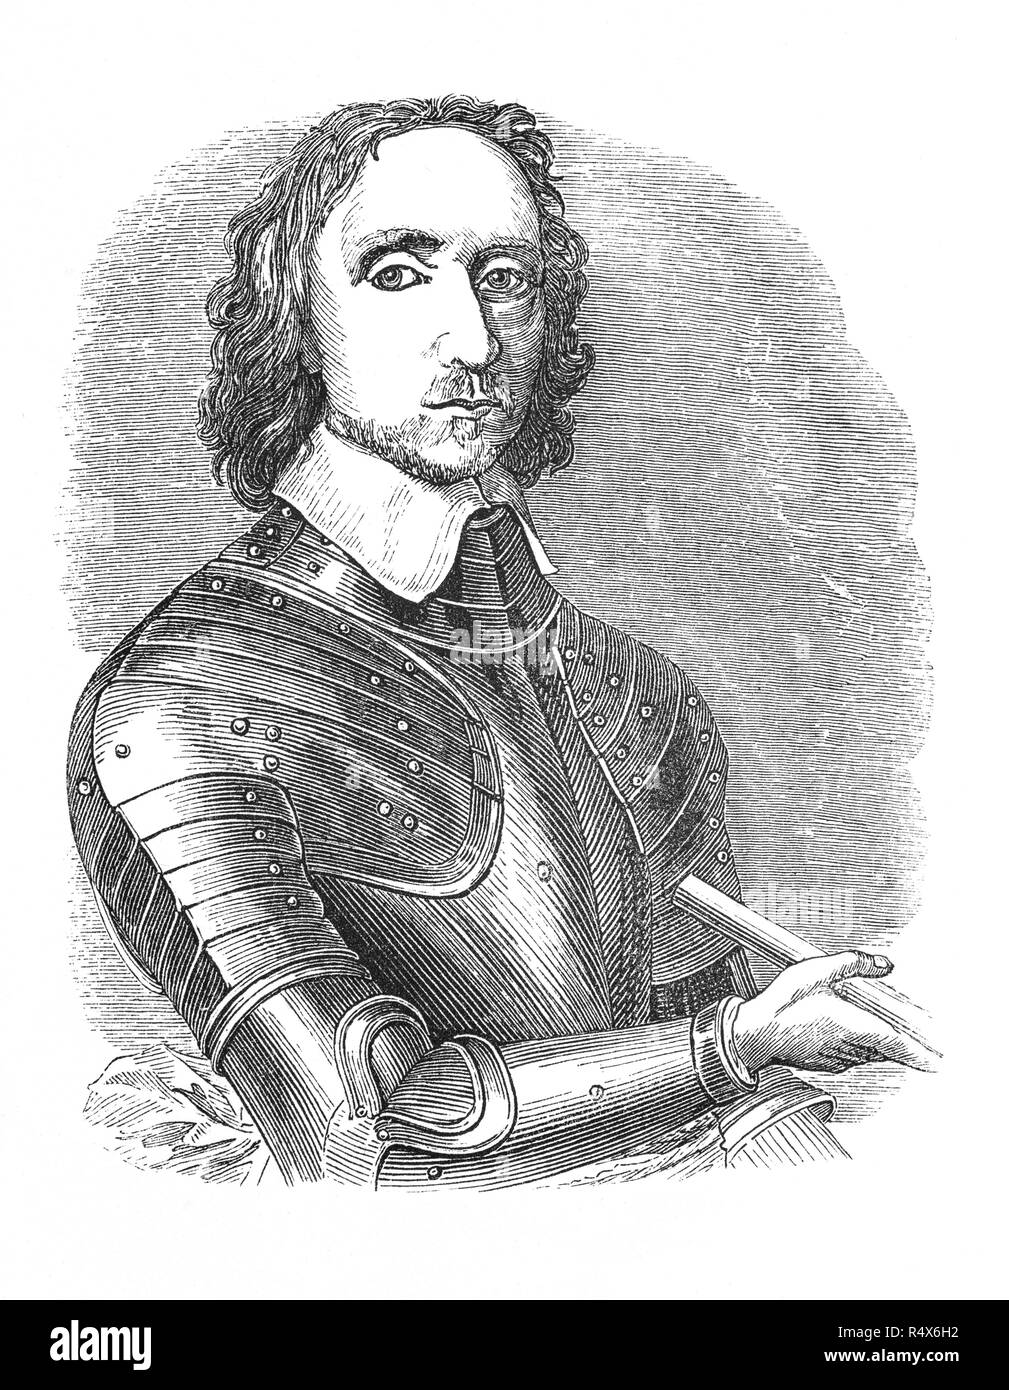 Oliver Cromwell (1599-1658) was elected Member of Parliament and entered the English Civil Wars on the side of the Parliamentarians. Nicknamed 'Old Ironsides', he demonstrated his ability as a commander and was quickly promoted from leading a single cavalry troop to being one of the principal commanders of the New Model Army, playing an important role under General Sir Thomas Fairfax in the defeat of the Royalis 11th forces. He went on to serve as Lord Protector of the Commonwealth of England, Scotland, and Ireland from 1653 until his death. - Stock Image